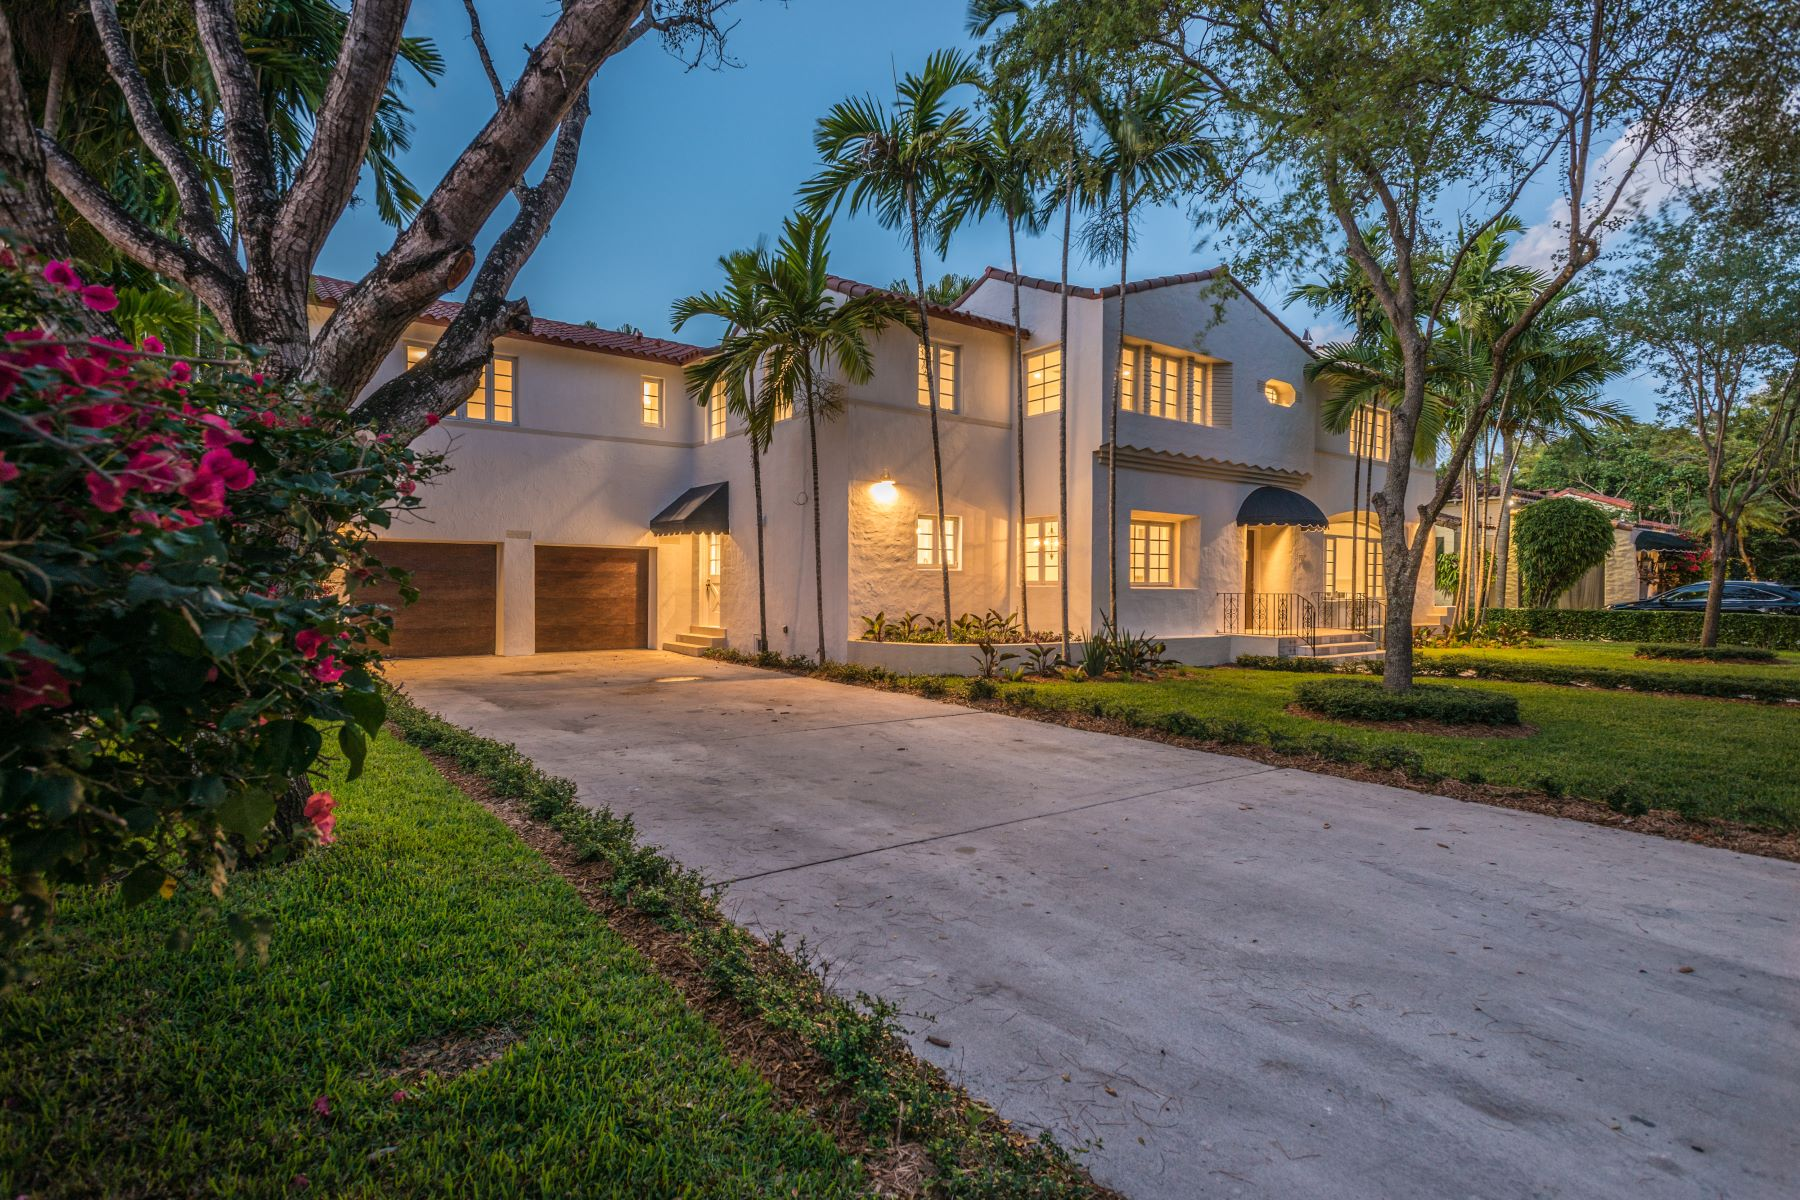 Single Family Home for Sale at 1117 Alhambra Cir Coral Gables, Florida, 33134 United States